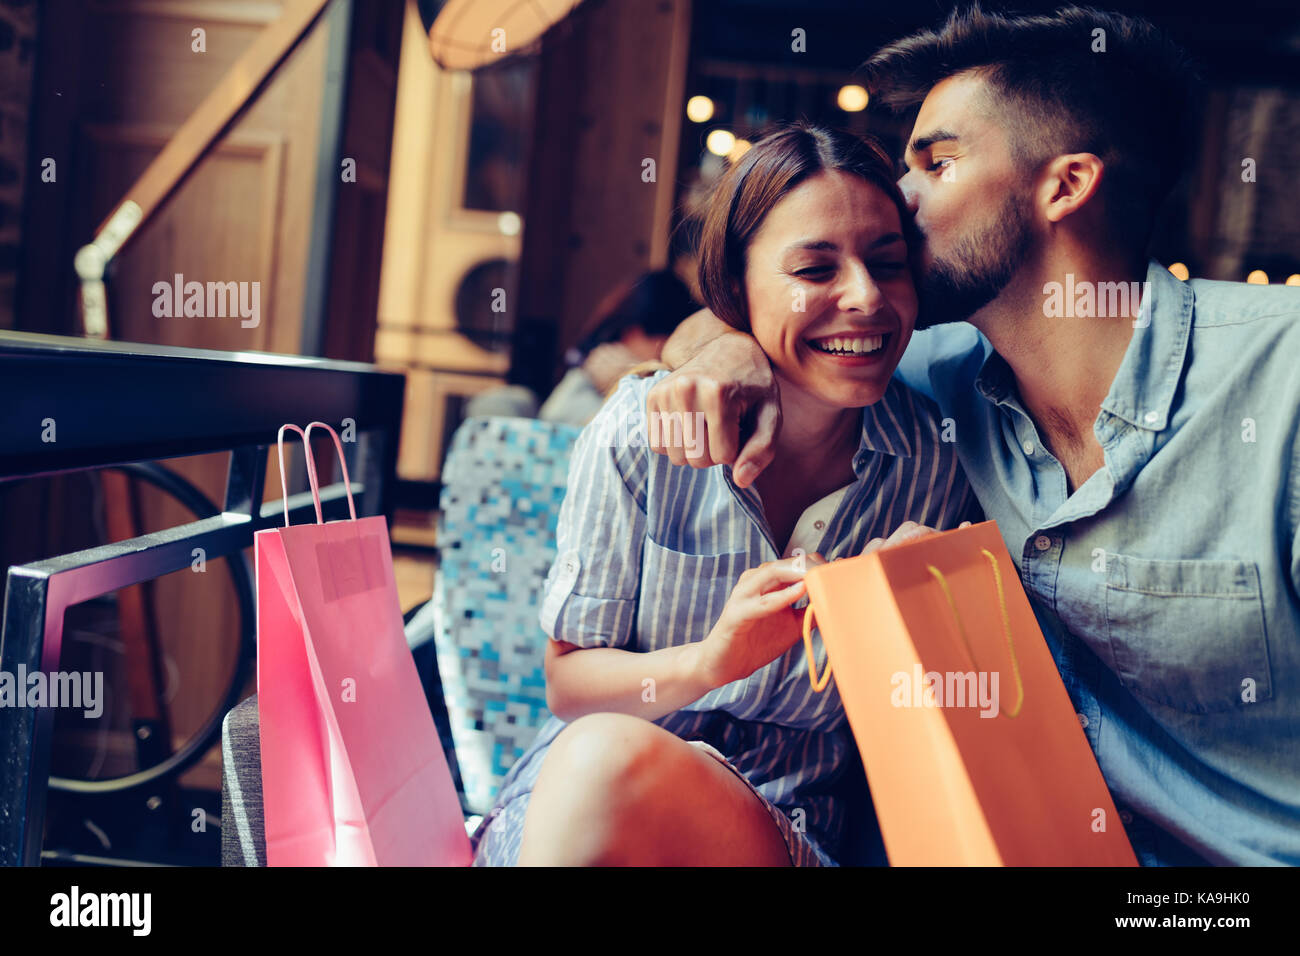 Young attractive couple on date in coffee shop - Stock Image